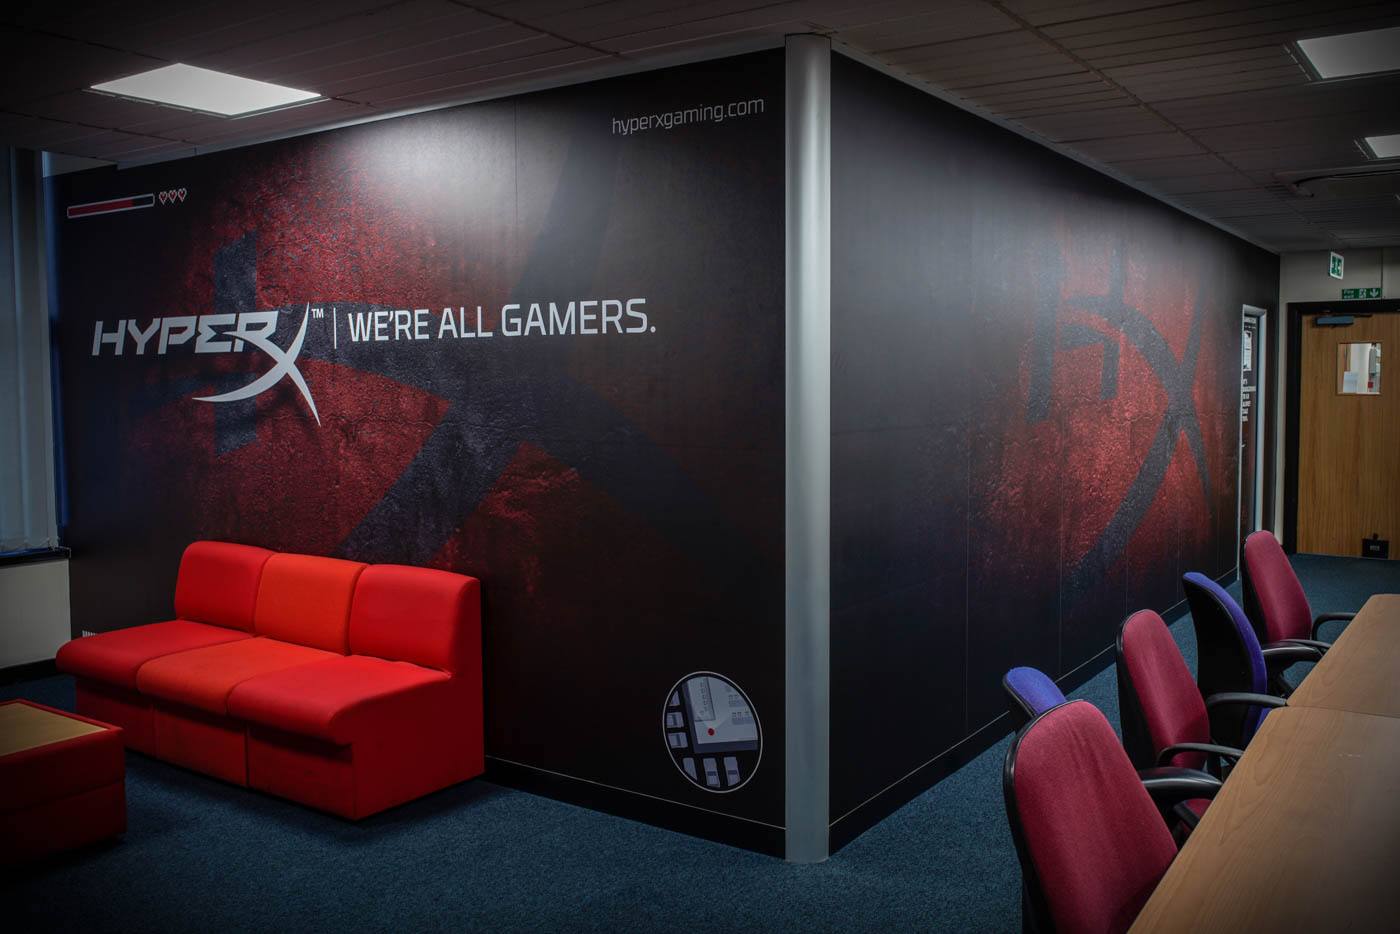 HyperX_Gaming_Room-1474